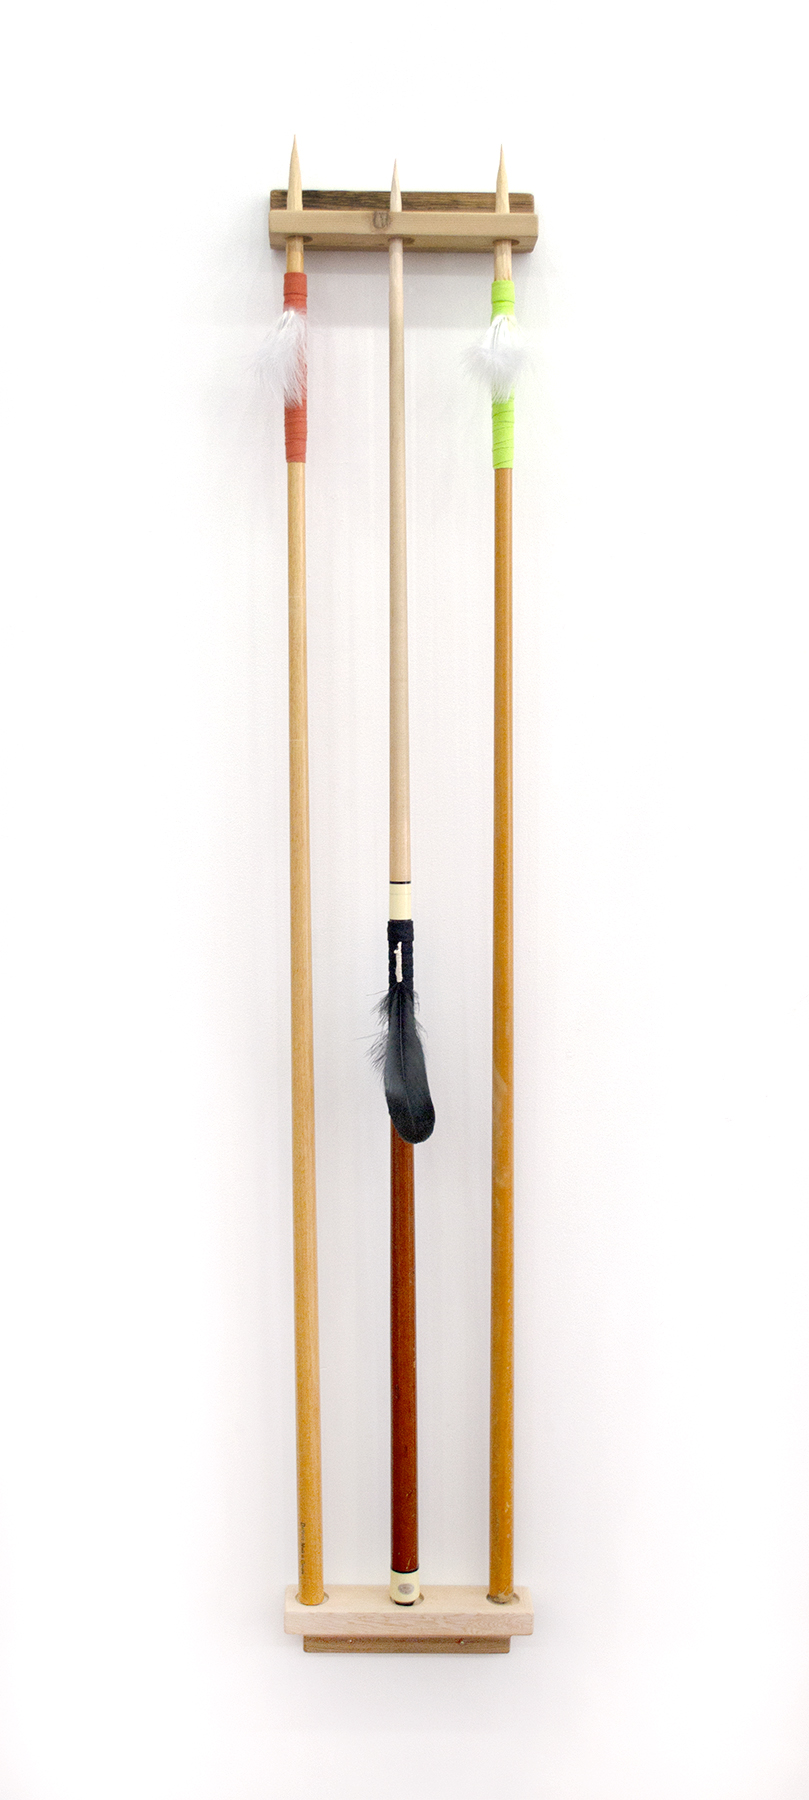 "Spears (4), 2018, Carlos Colín, Pool cues, feathers, wood, 57"" x 10"" x 2"", $1,800"